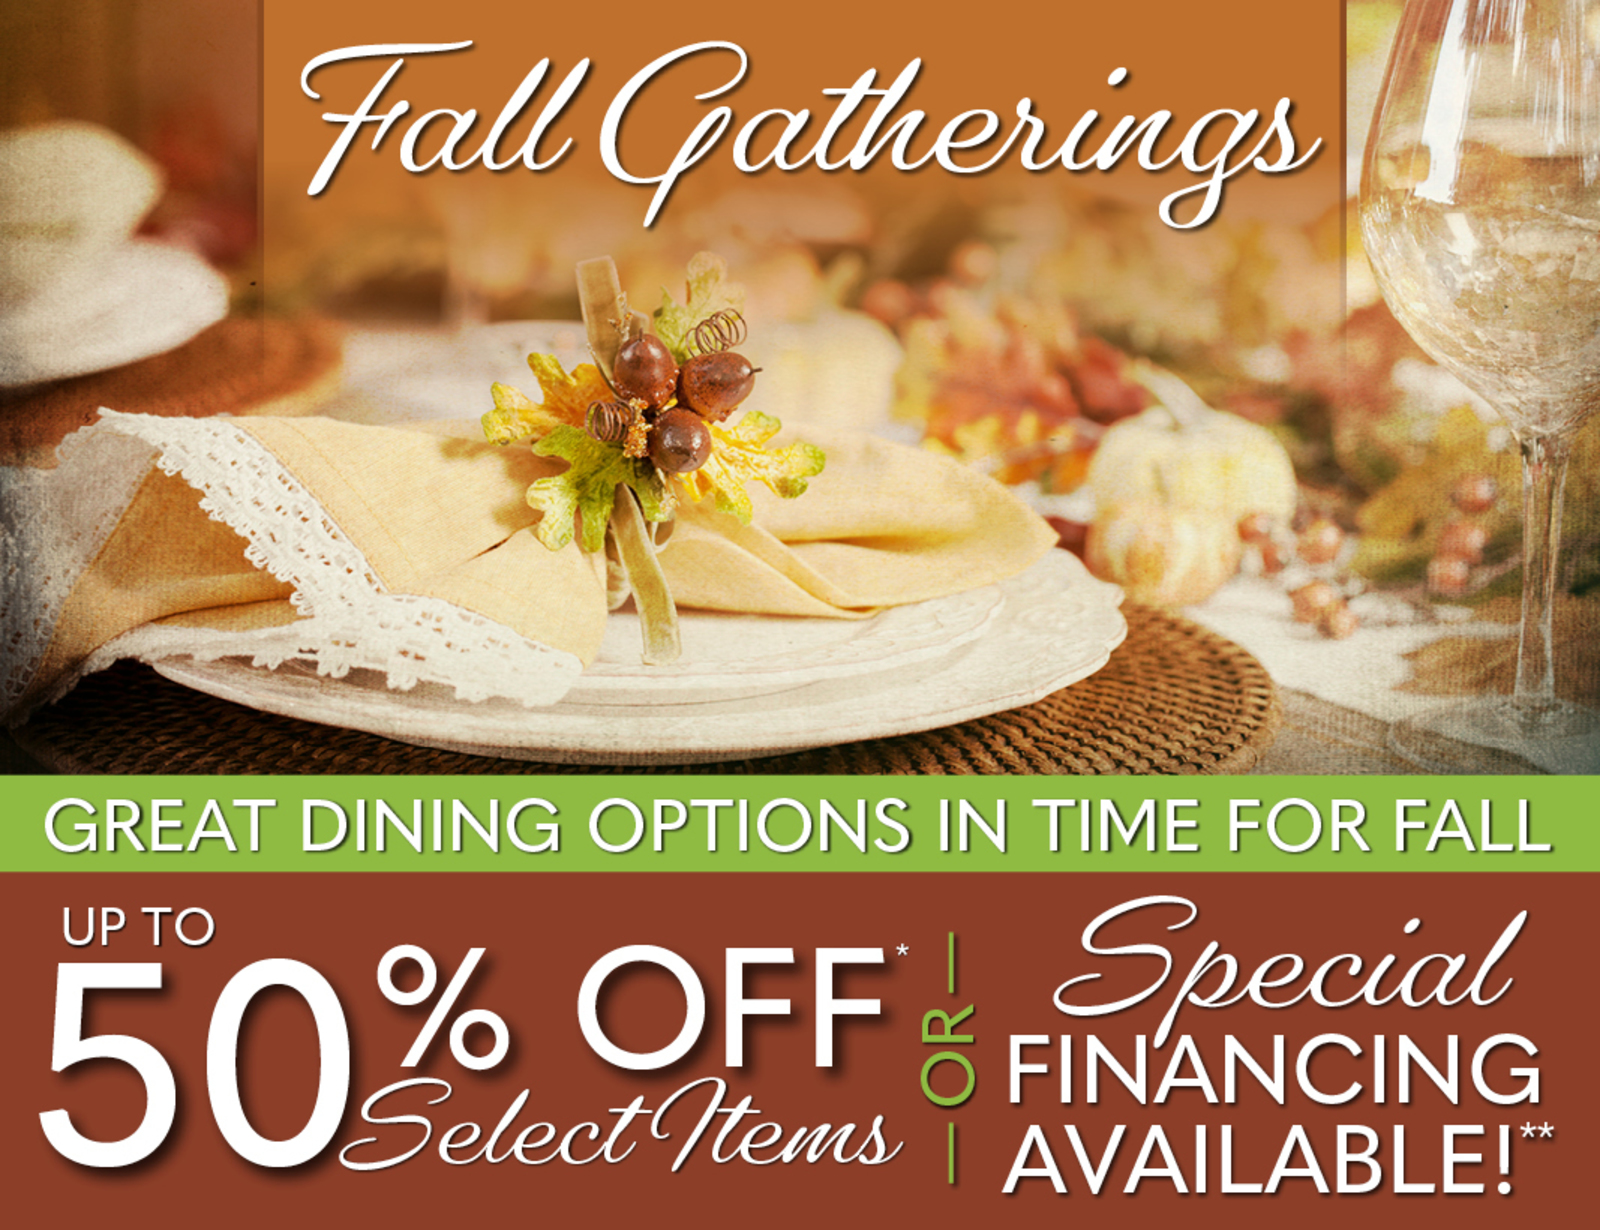 Fall Gatherings | Up To 50% Off Select Items!